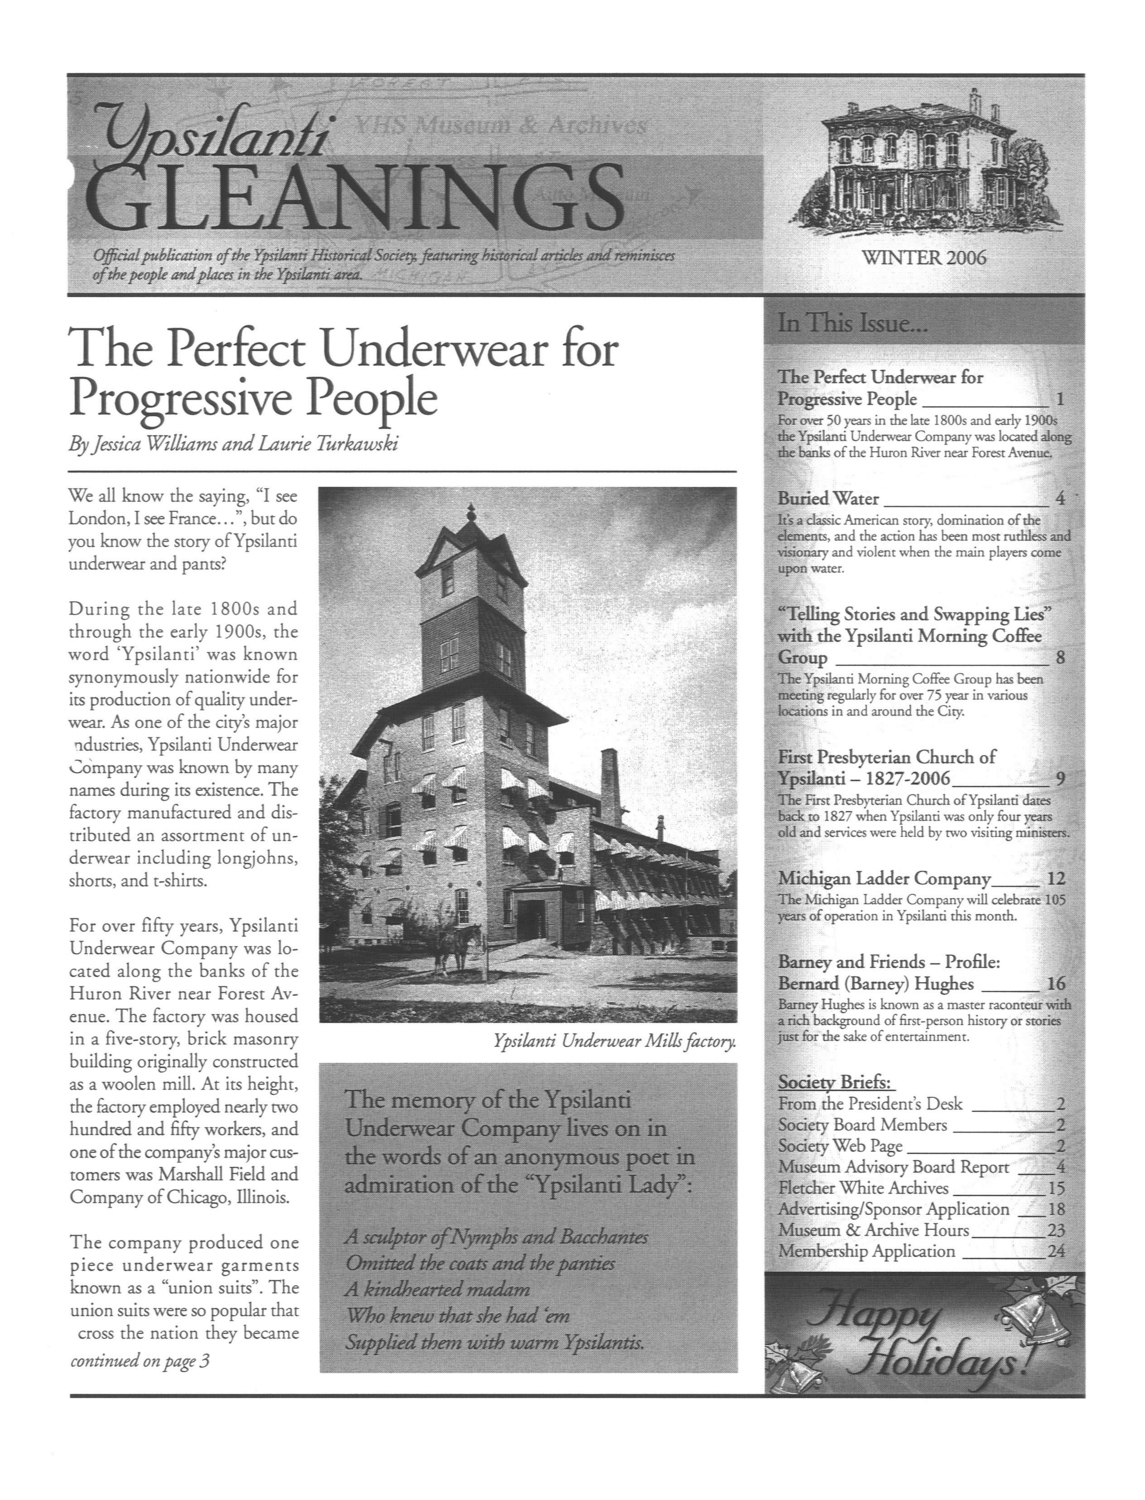 Ypsilanti Gleanings, Winter 2006 image